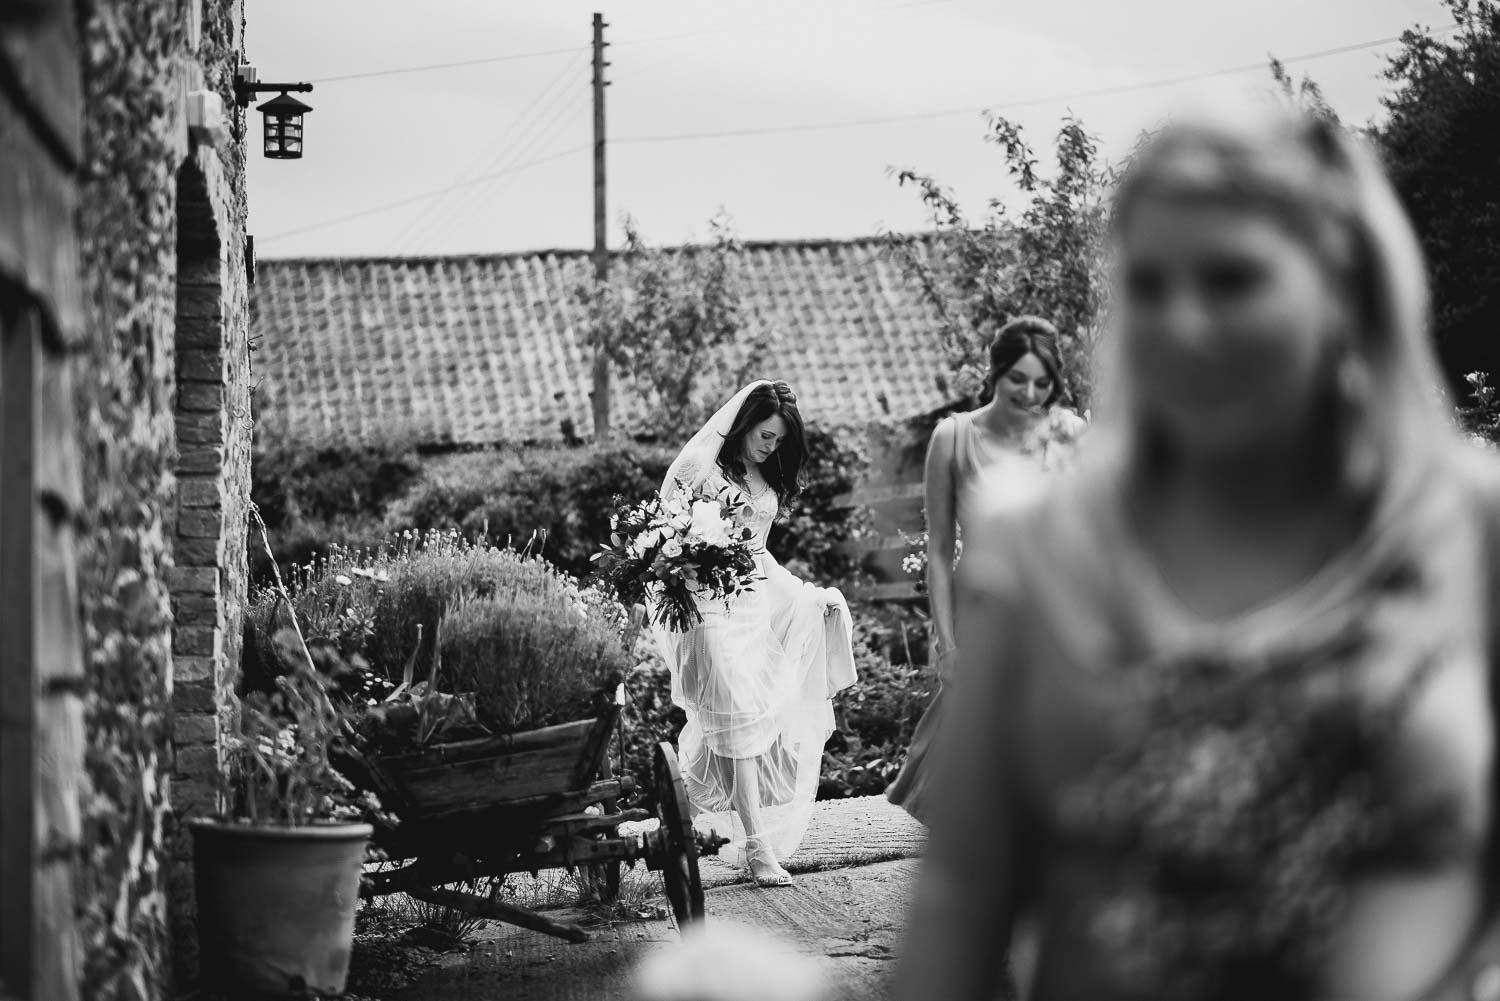 documentary-wedding-photographer-15.jpg